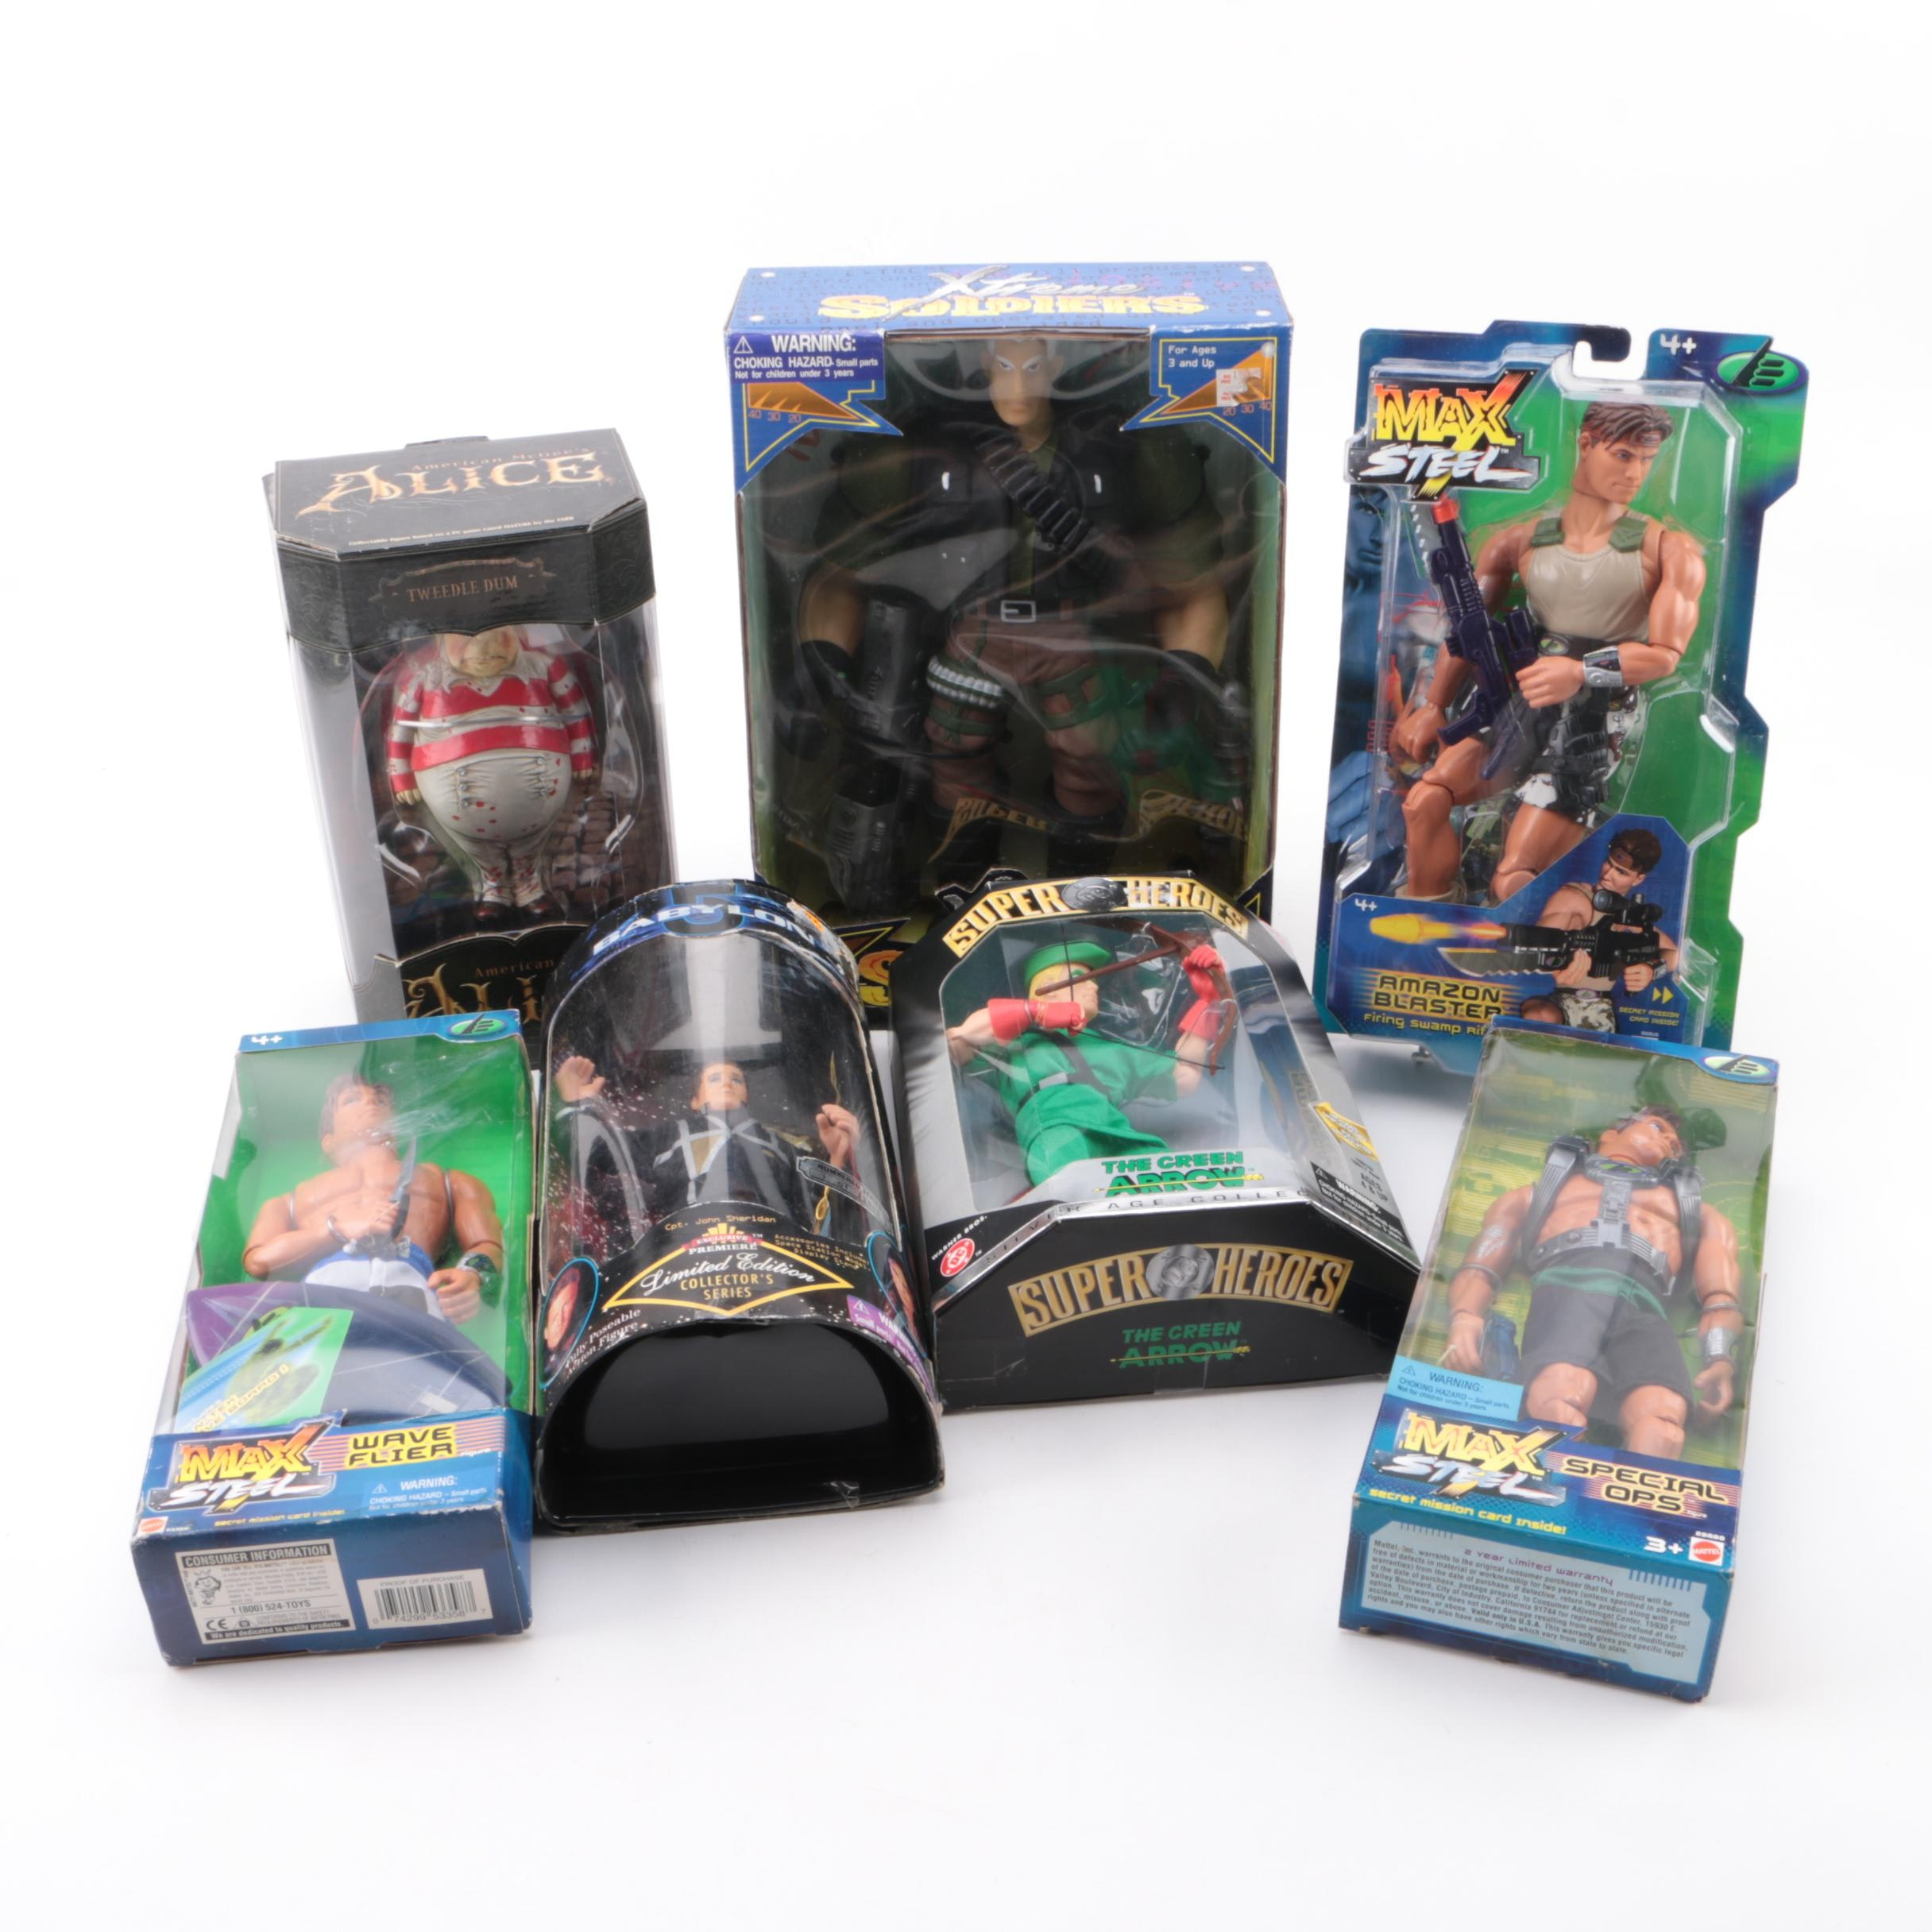 """""""Max Steel"""", """"Xtreme Soldiers"""" and Other Collectible Action Figures"""